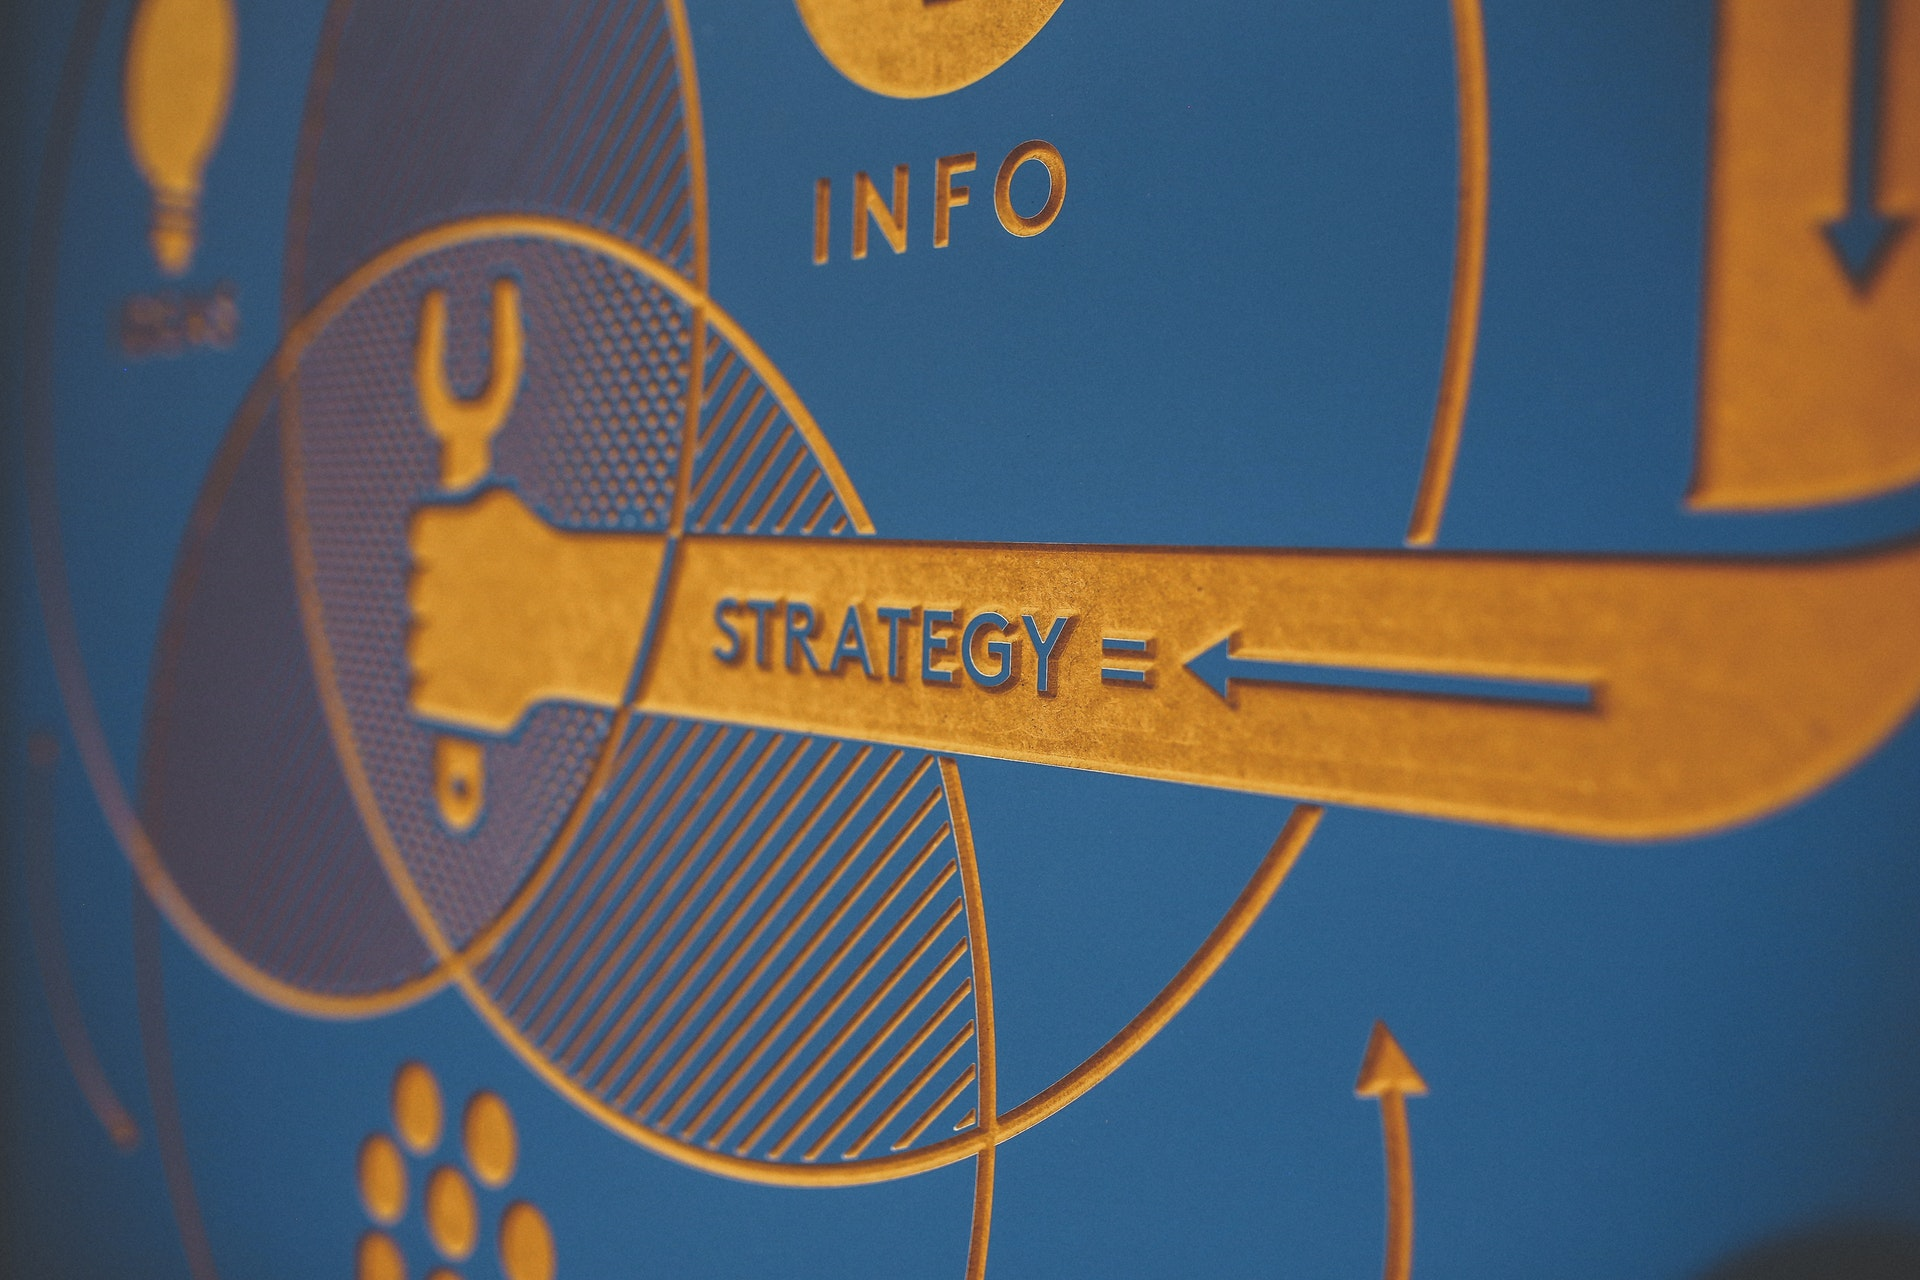 COVID-19 Response: Short-Term Strategy for CIOs